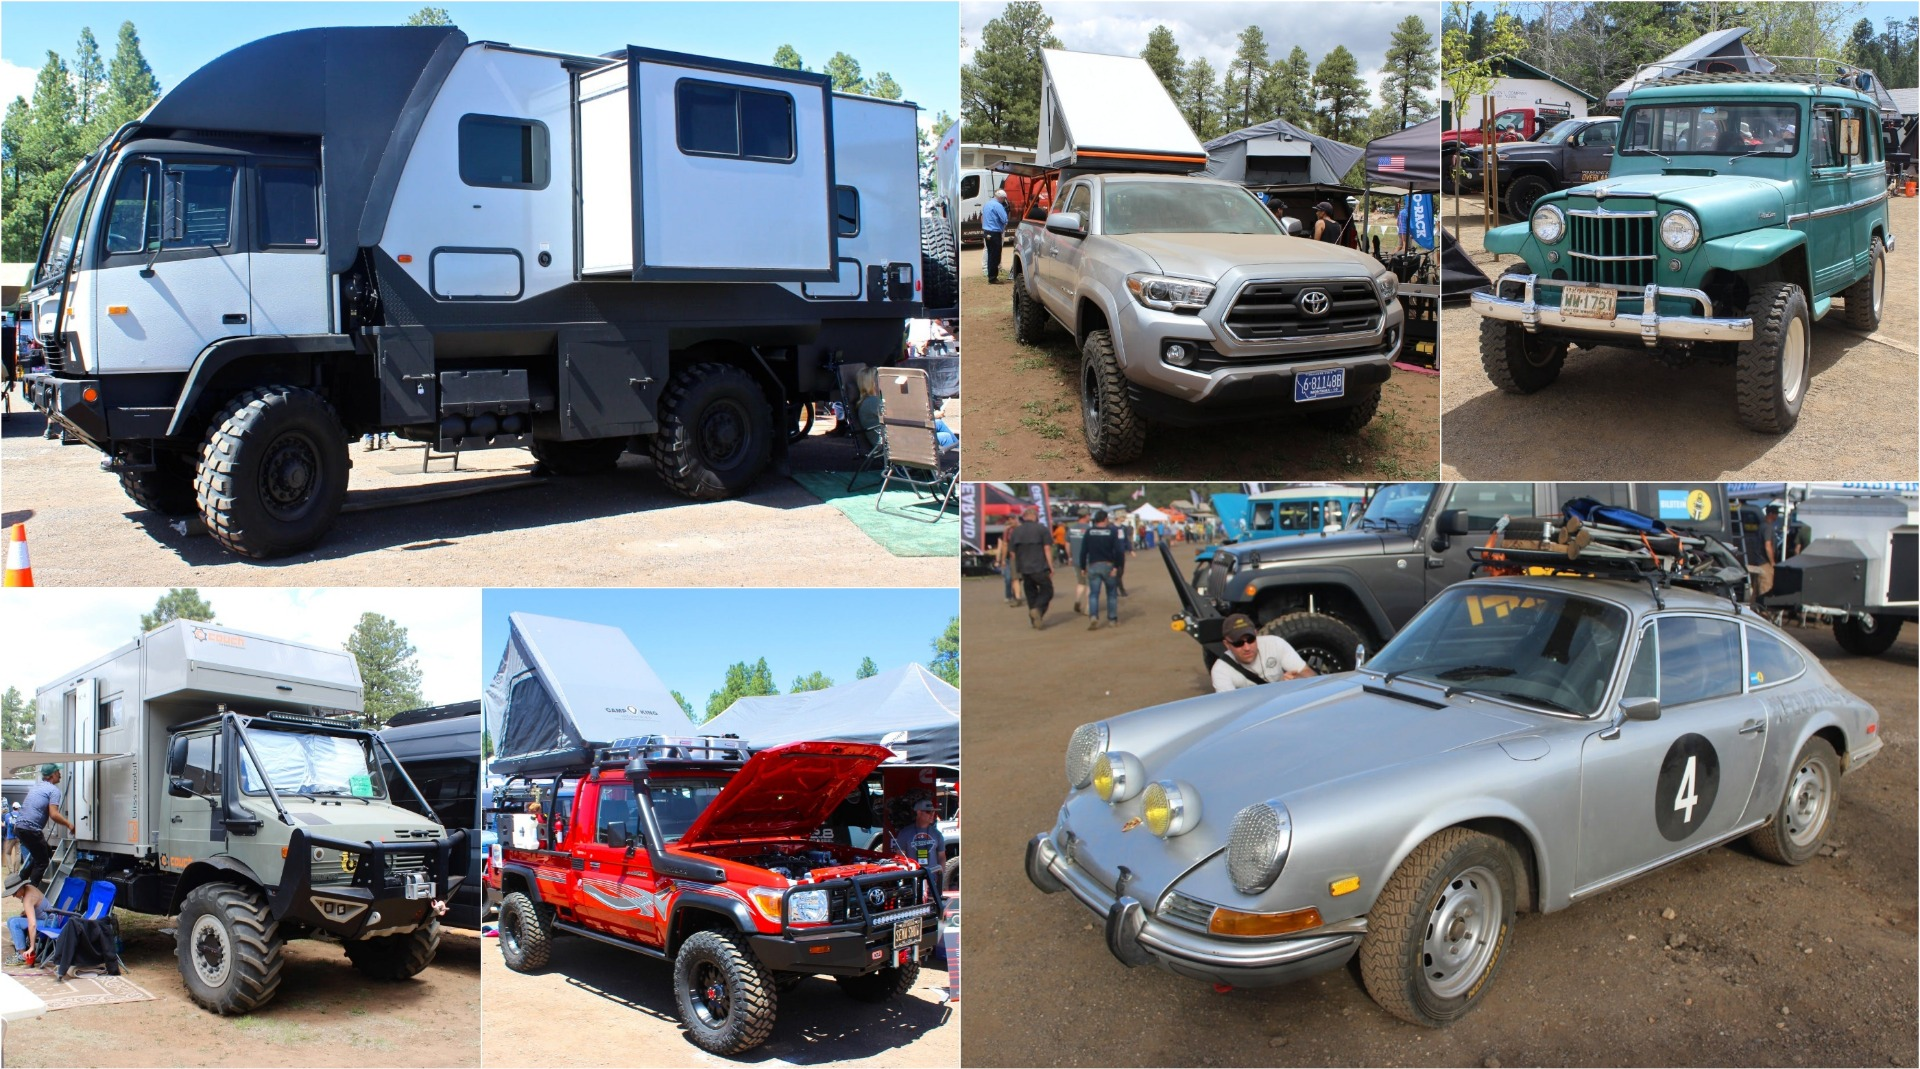 In photos: Pickup campers, big rig motorhomes and adventure